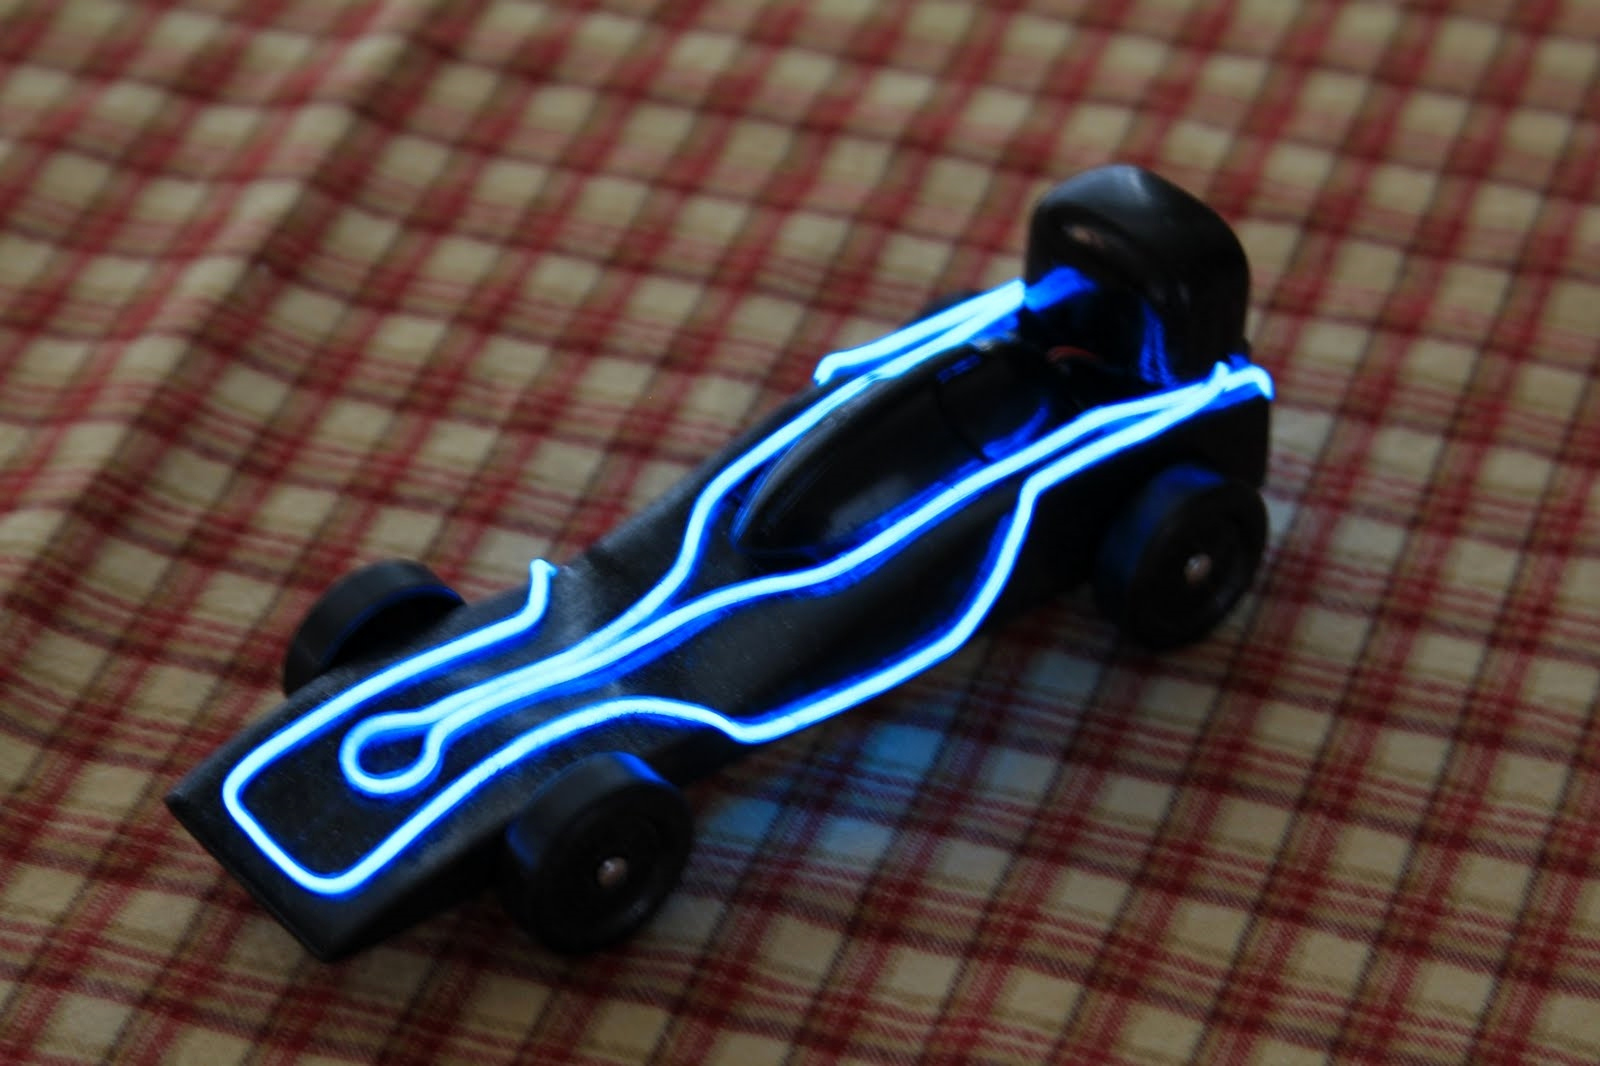 Free Pinewood Derby Car Designs Fresh Pinewood Derby Cars Cars Wallpaper Hd for Desktop